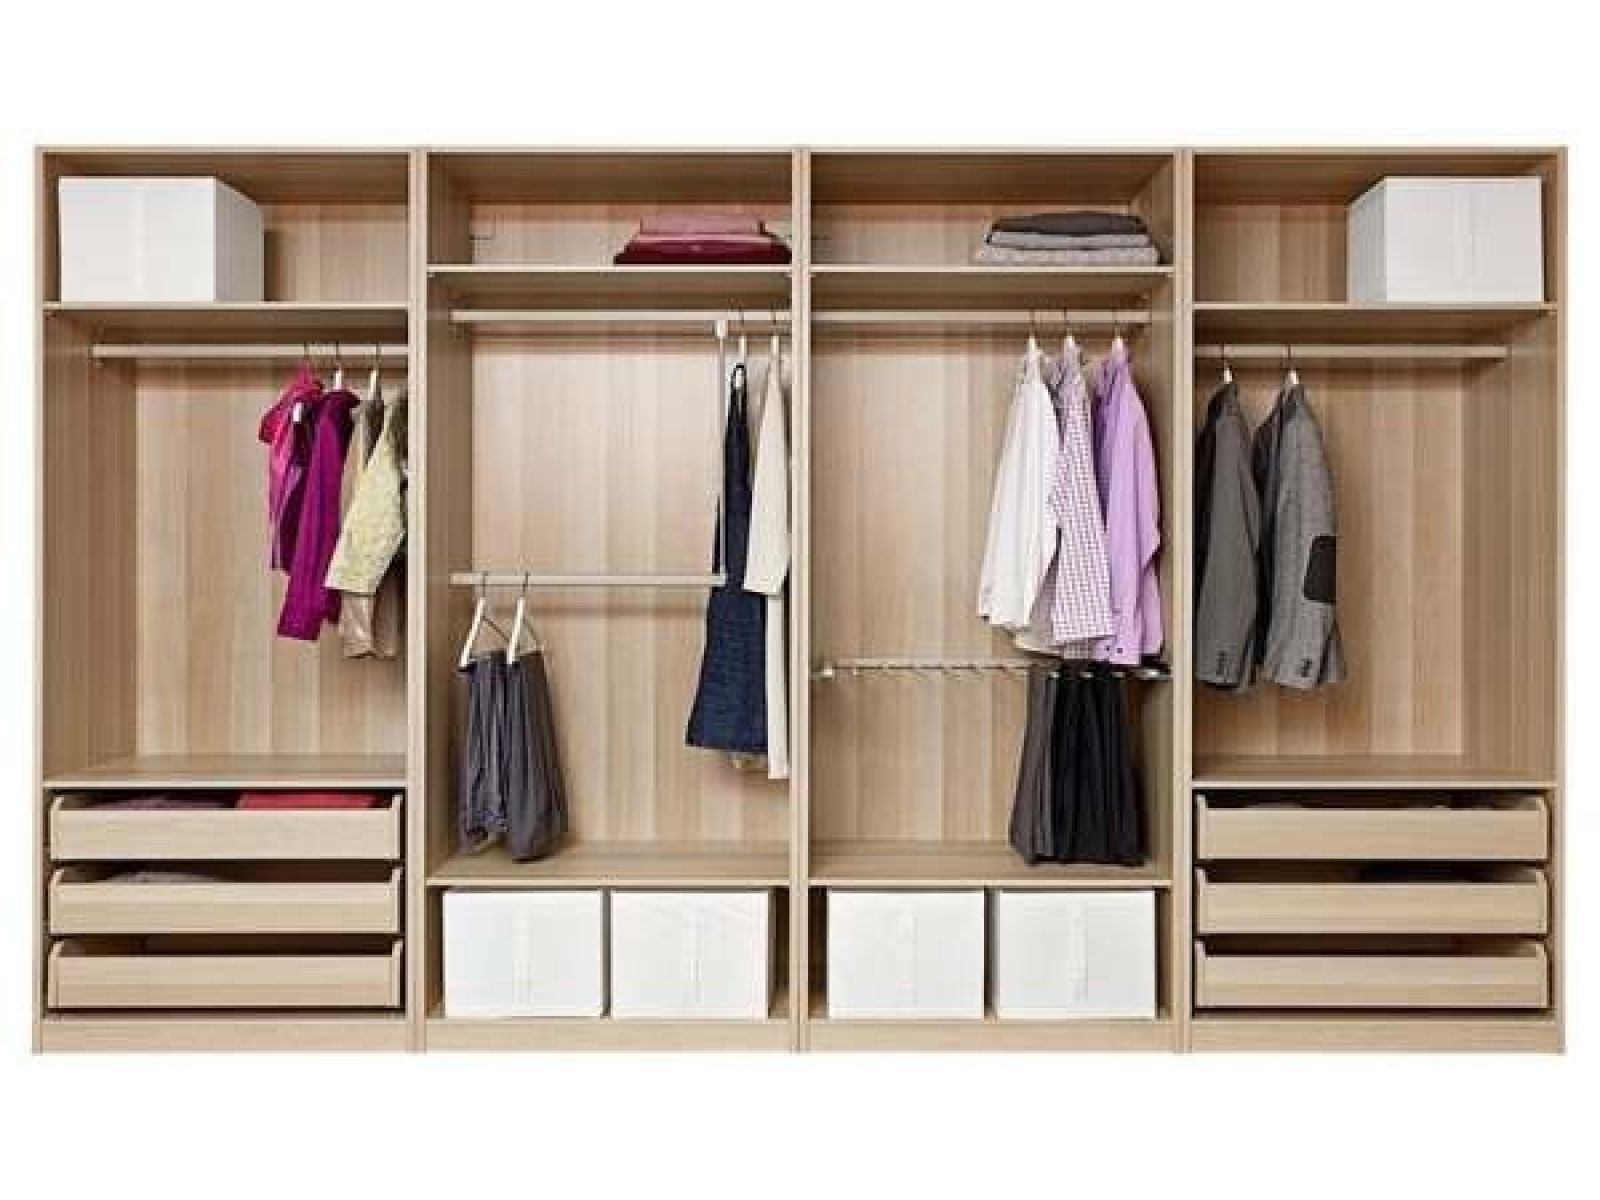 Keep your bedroom closet neat using ikea closet organizer pax wardrobe with shelving and for Bedroom closet organizers ikea